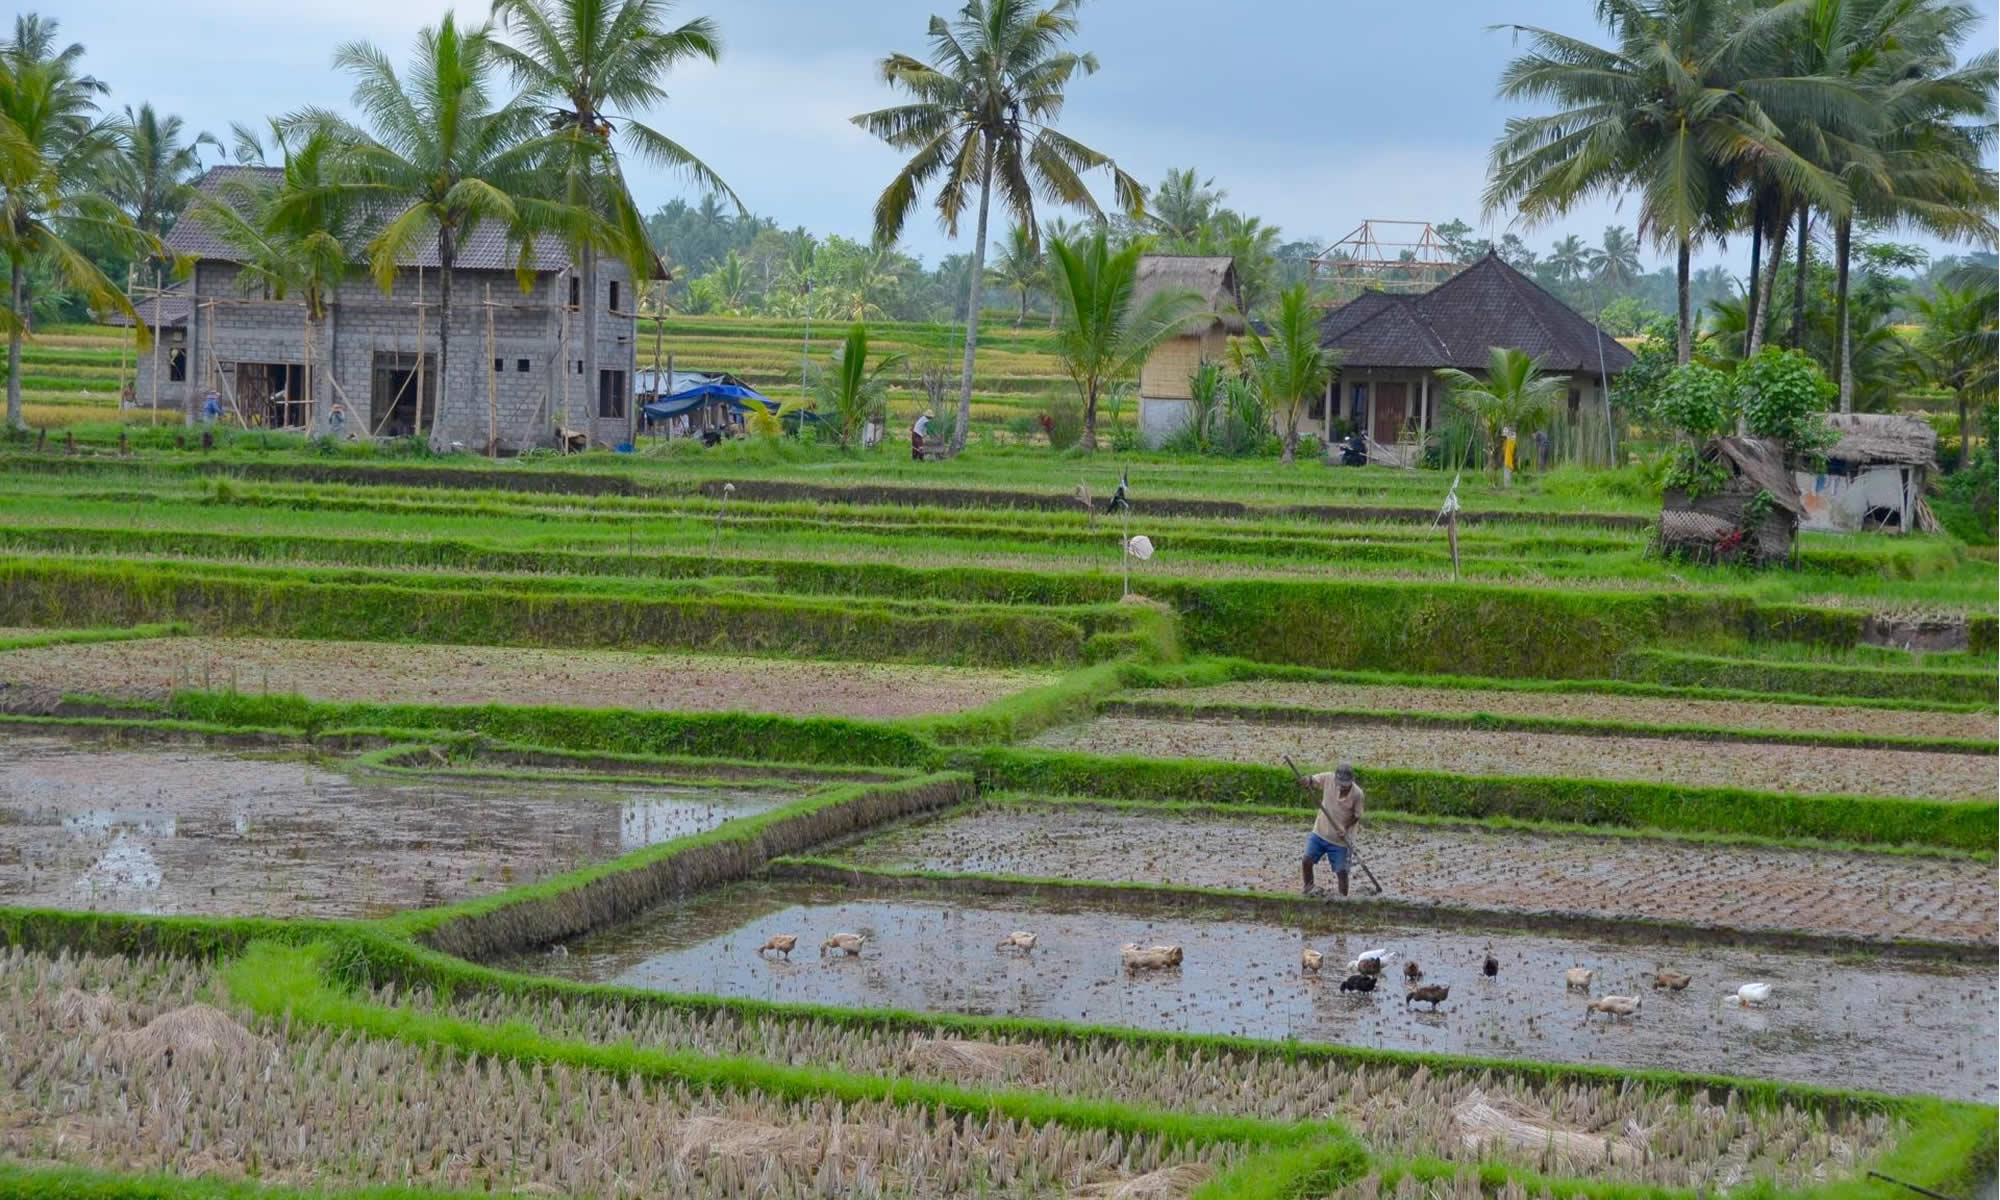 A rice farmer tends to his rice fields in Ubud, Bali.